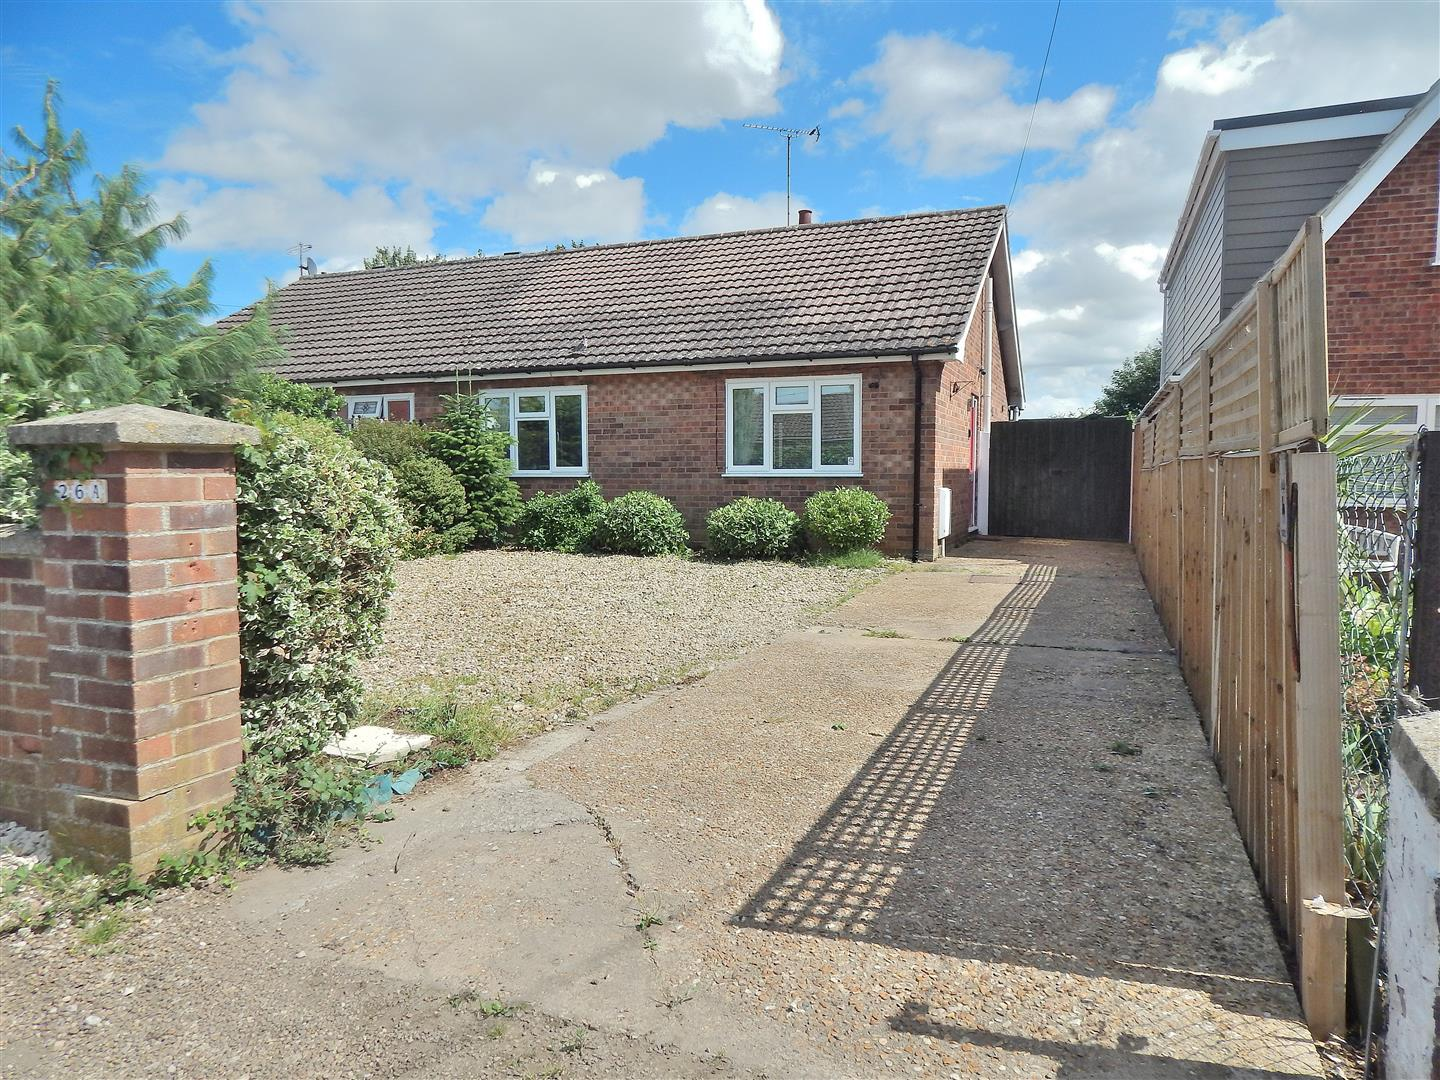 2 bed semi-detached bungalow for sale in King's Lynn, PE31 7DG, PE31